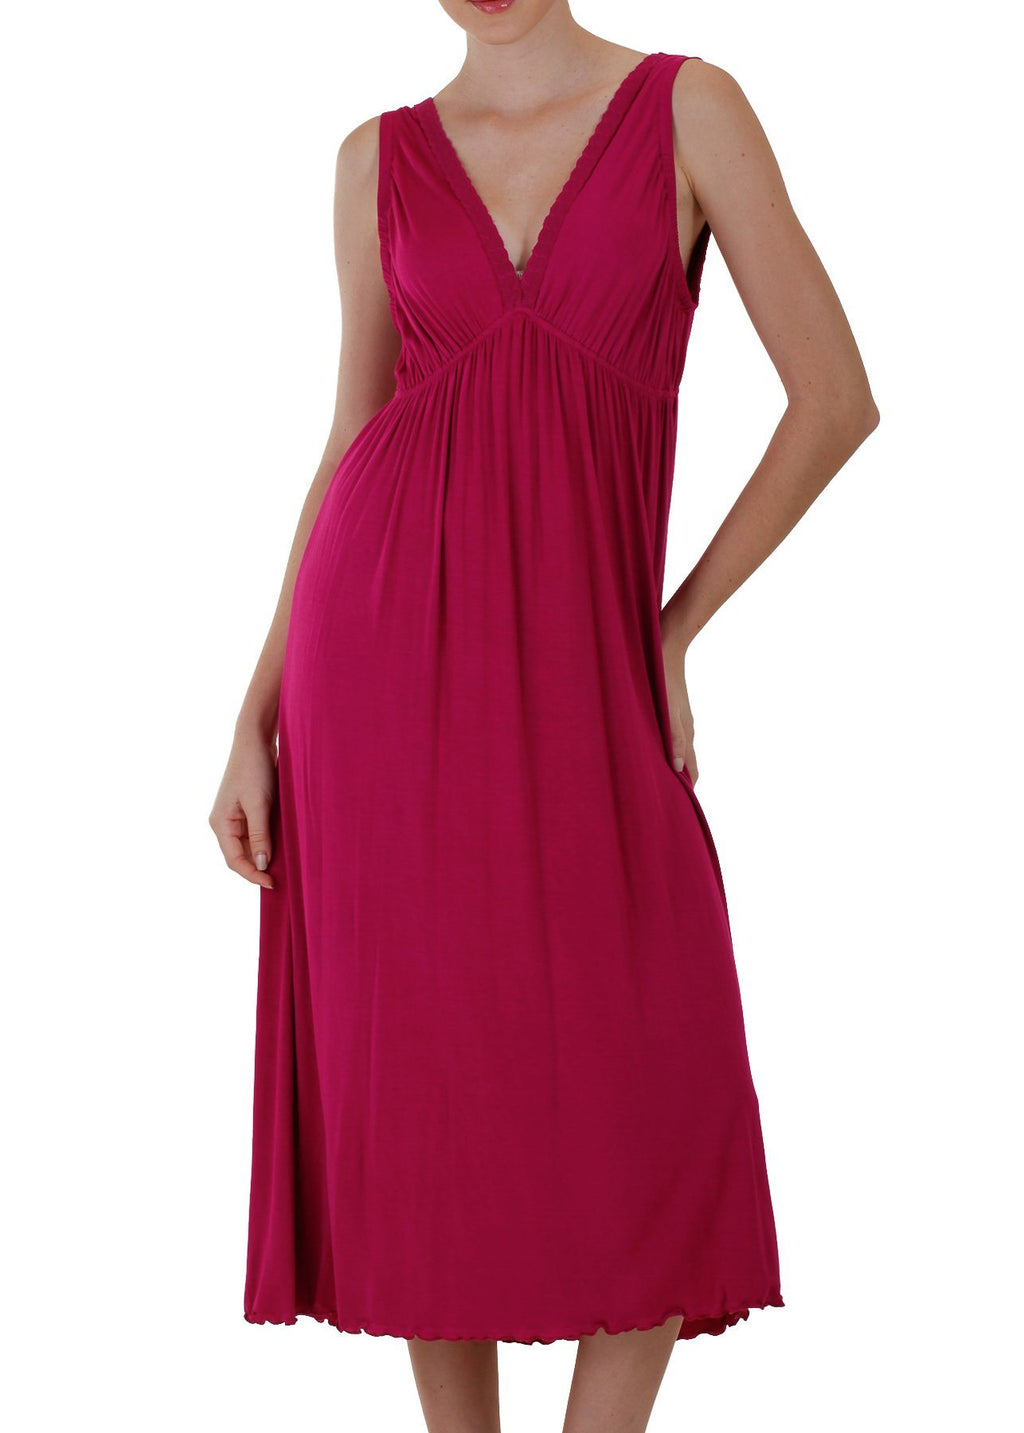 Celia Nightgown - Berry Mystique Intimates